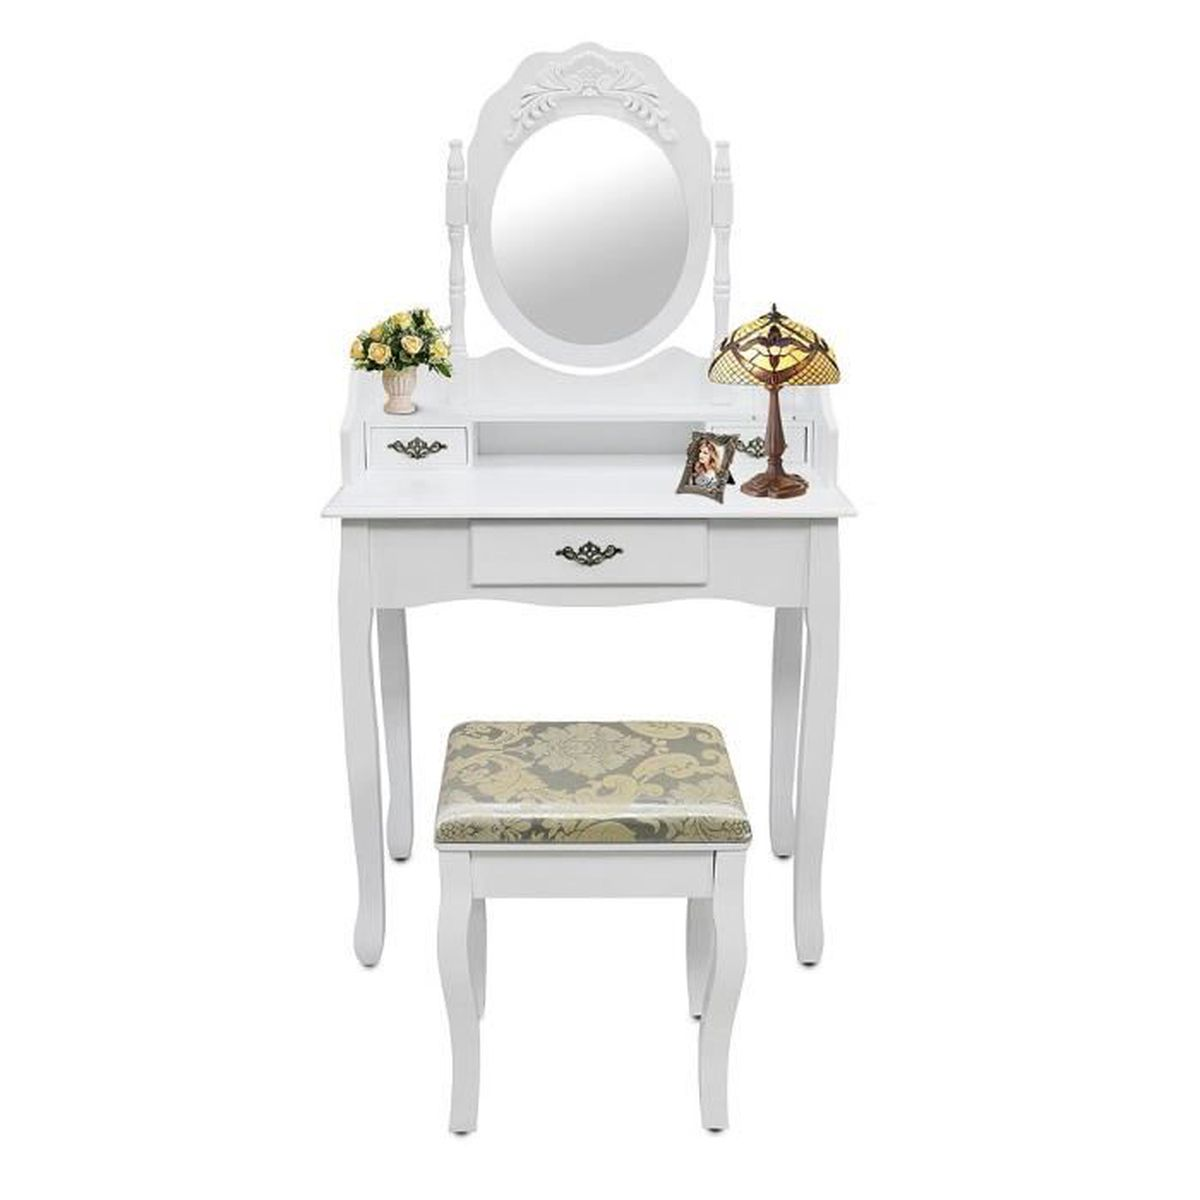 table de maquillage avec miroir et tabouret blanc coiffeuse 3 tiroirs achat vente. Black Bedroom Furniture Sets. Home Design Ideas